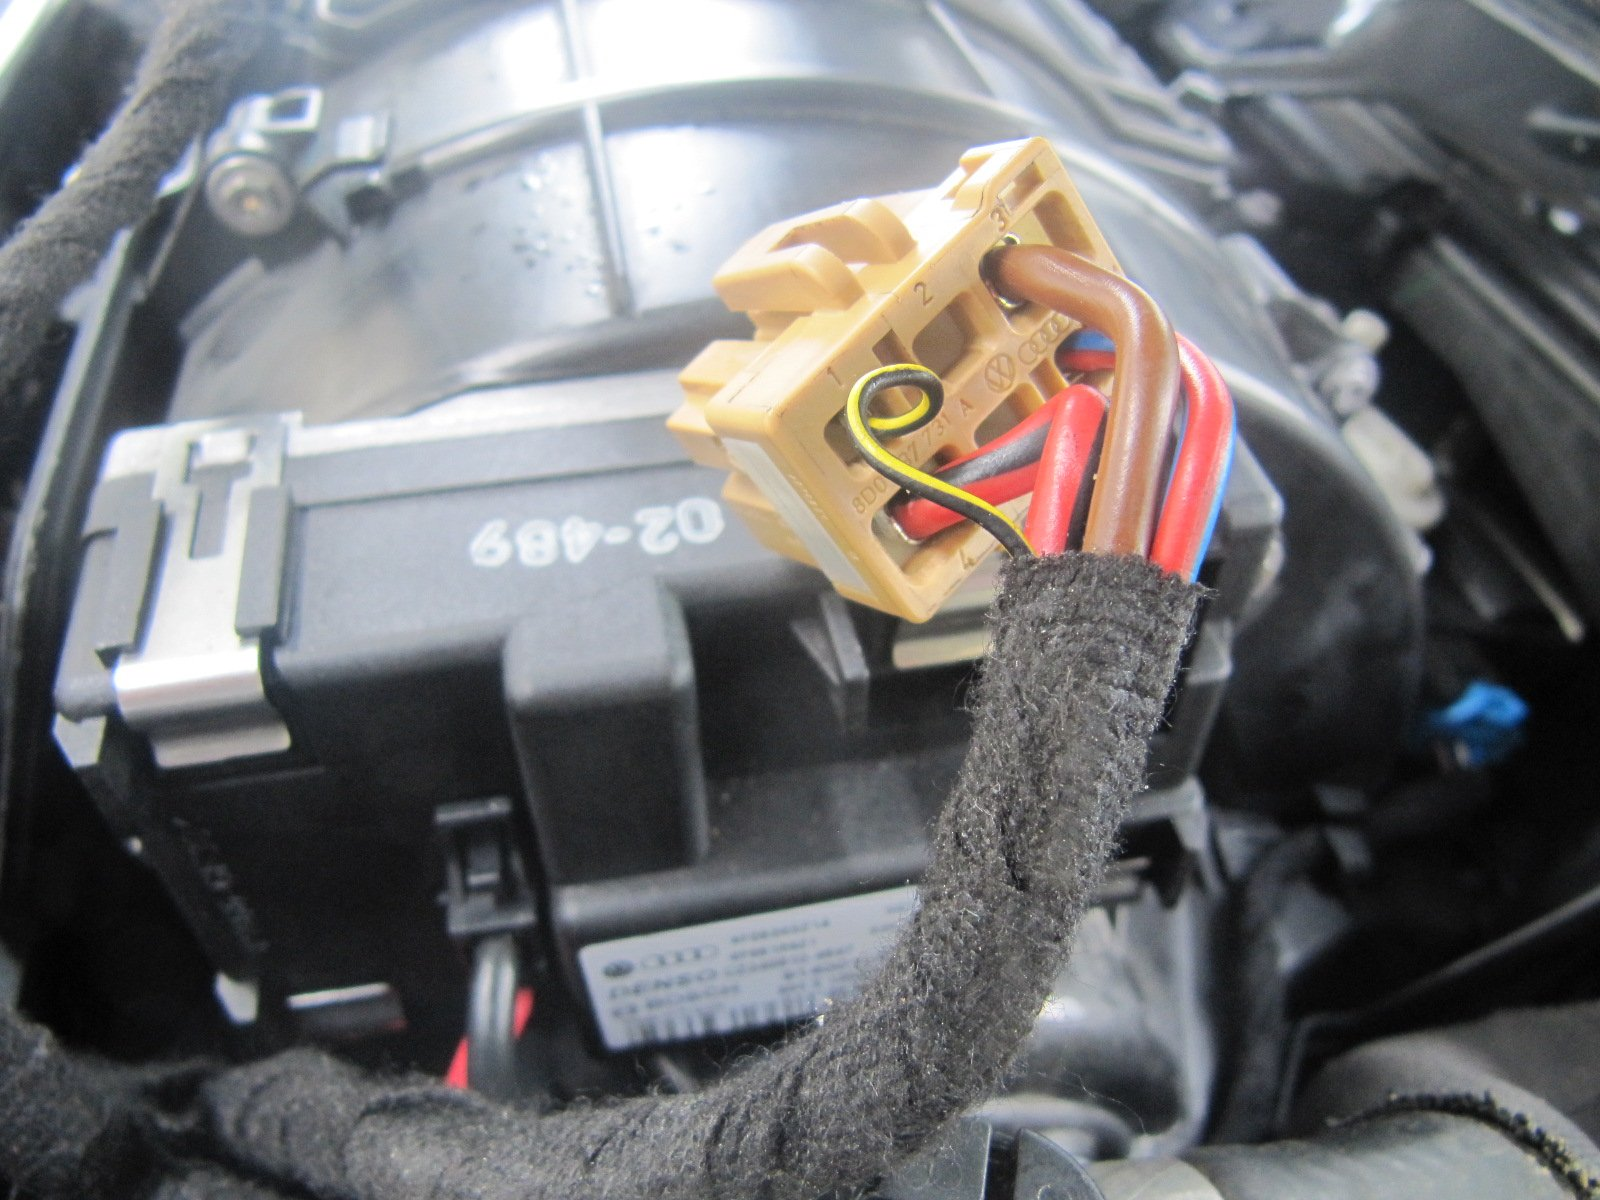 05 A6 32l Blower Problems Cant Figured It Out Whats The Problem Audi Fan Control Module Wiring Thanks For Your Help